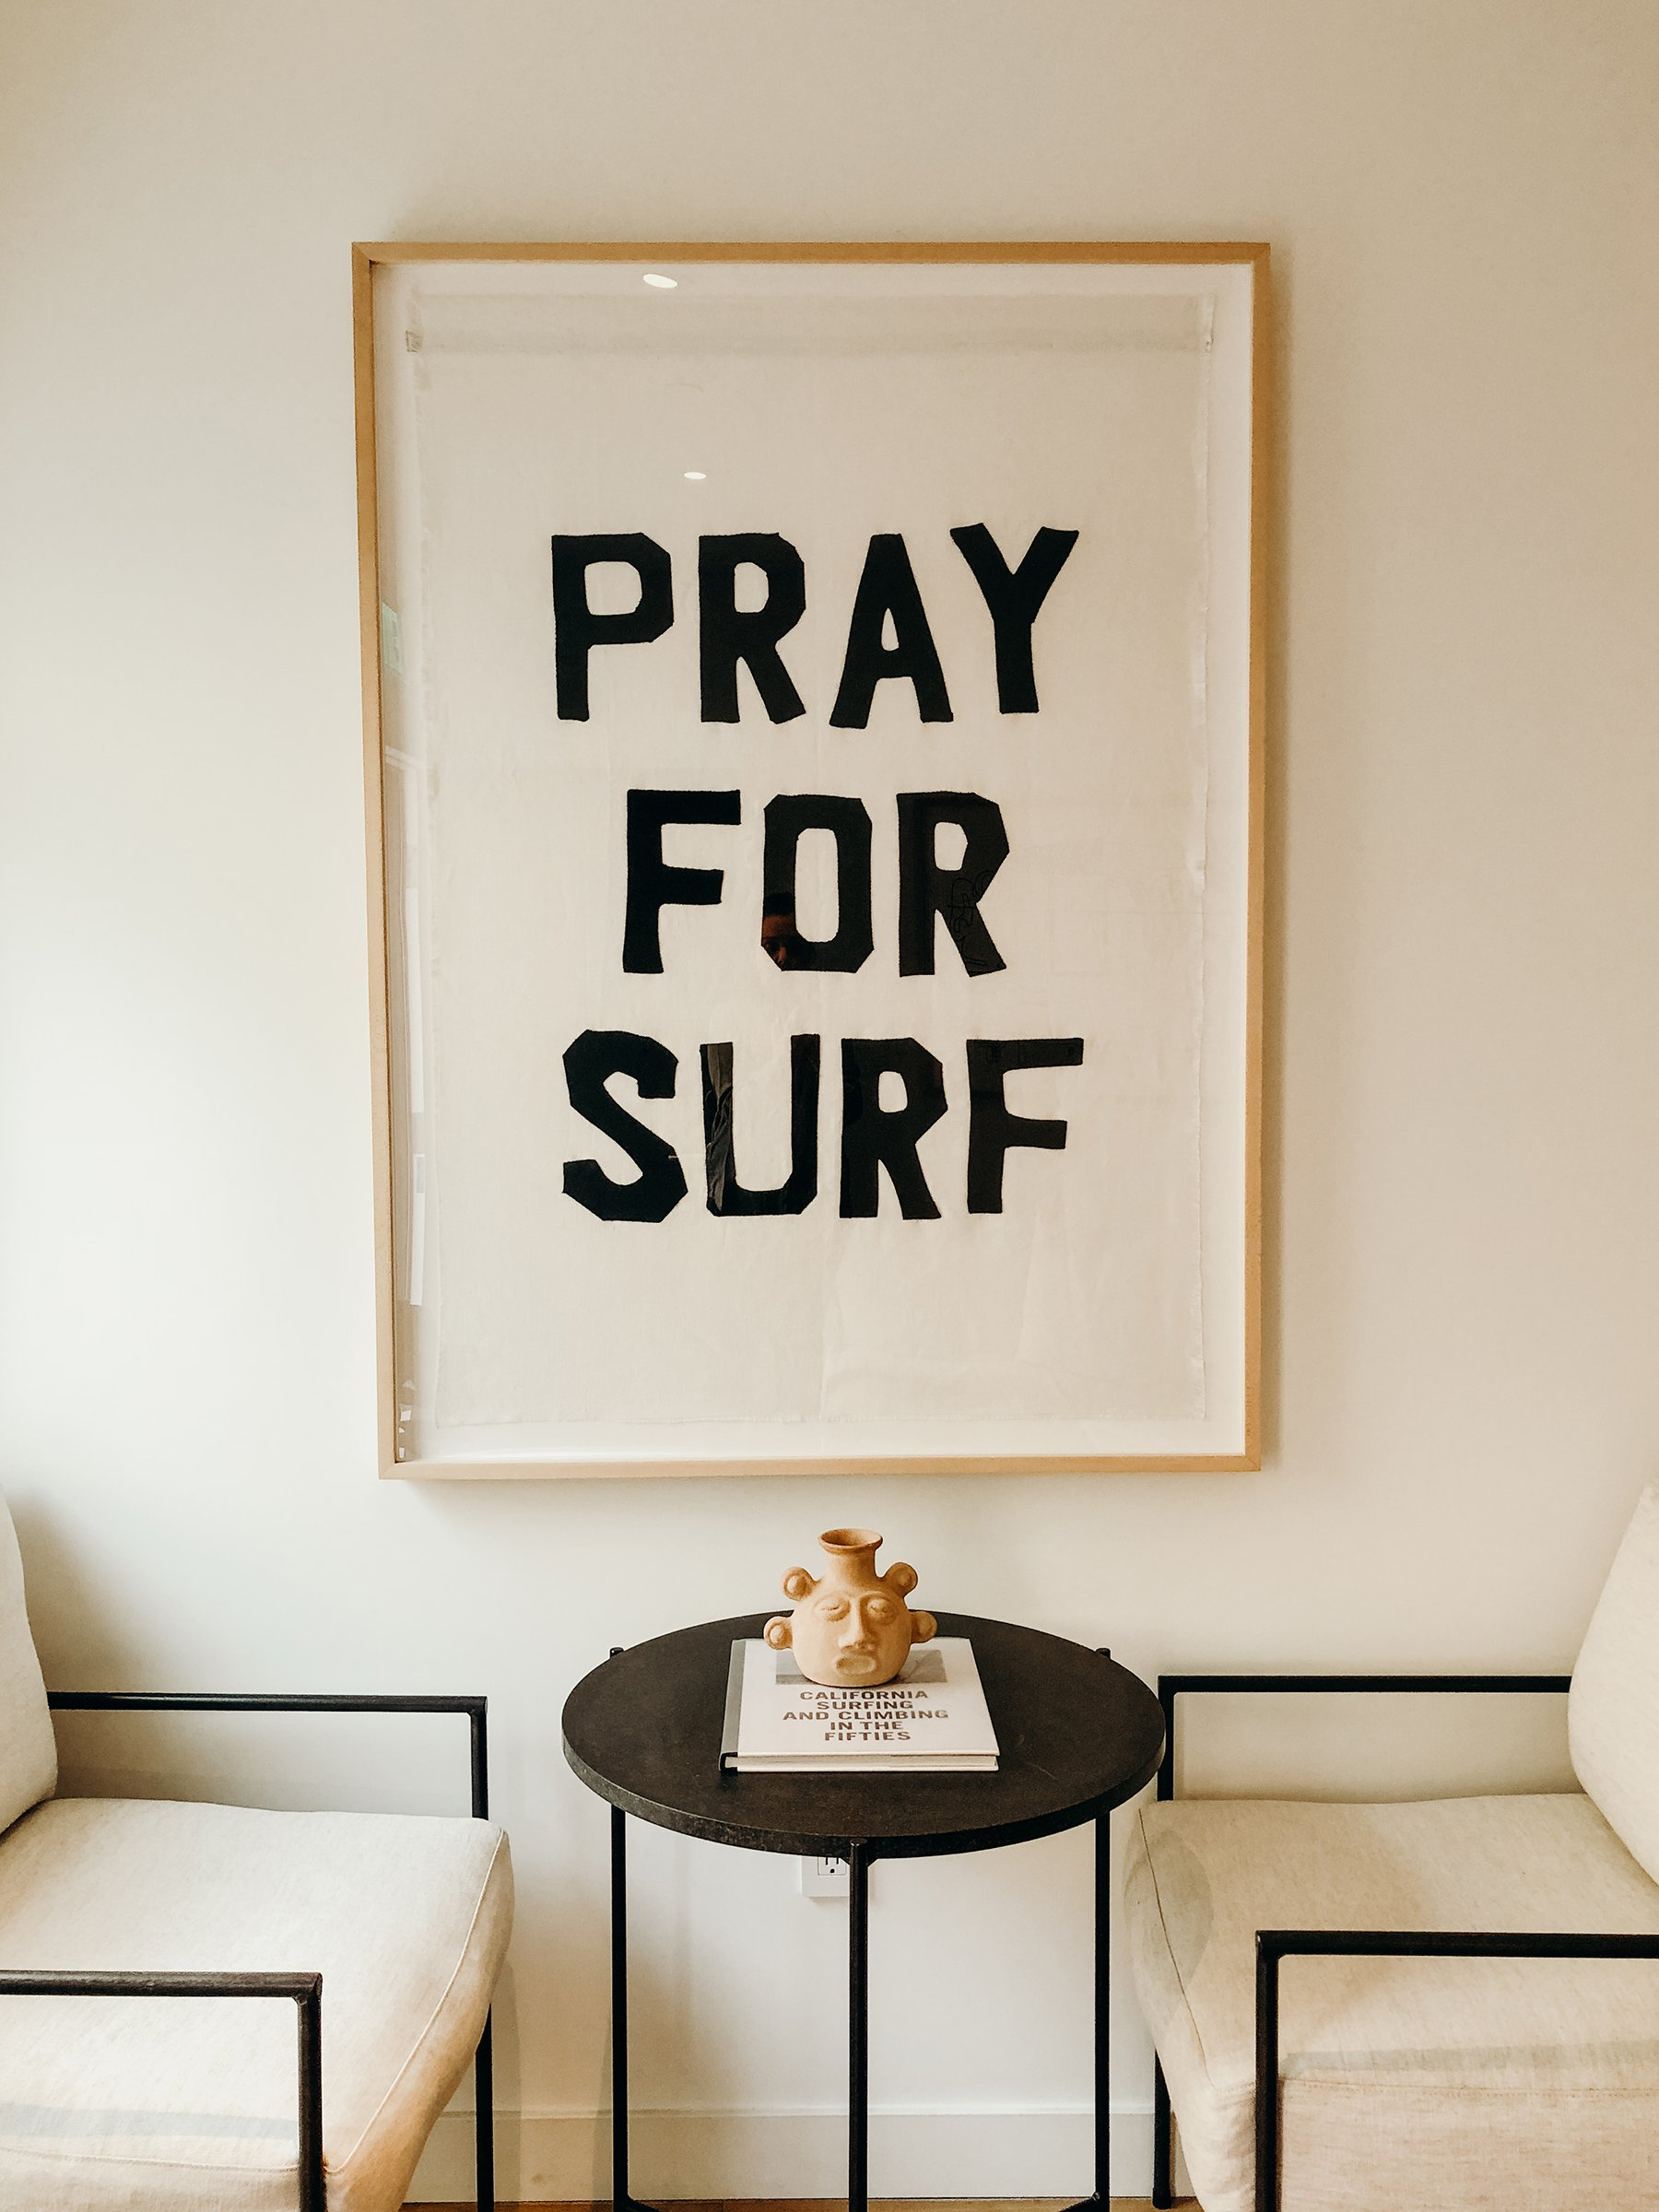 Pray for Surf  featured at The Surfrider Hotel, Malibu, CA.